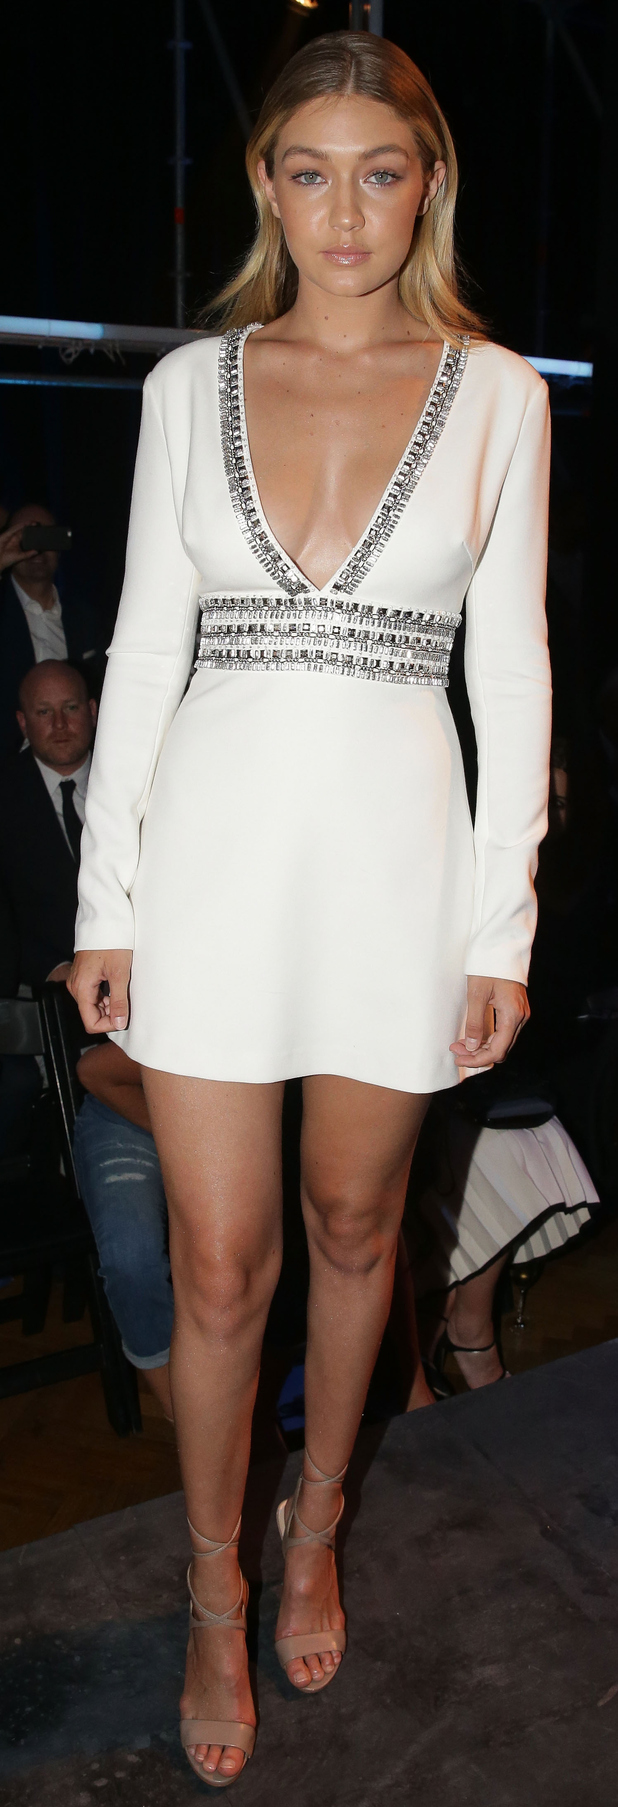 Gigi Hadid on the front row at the David Jones catwalk show in Sydney, 6th August 2015